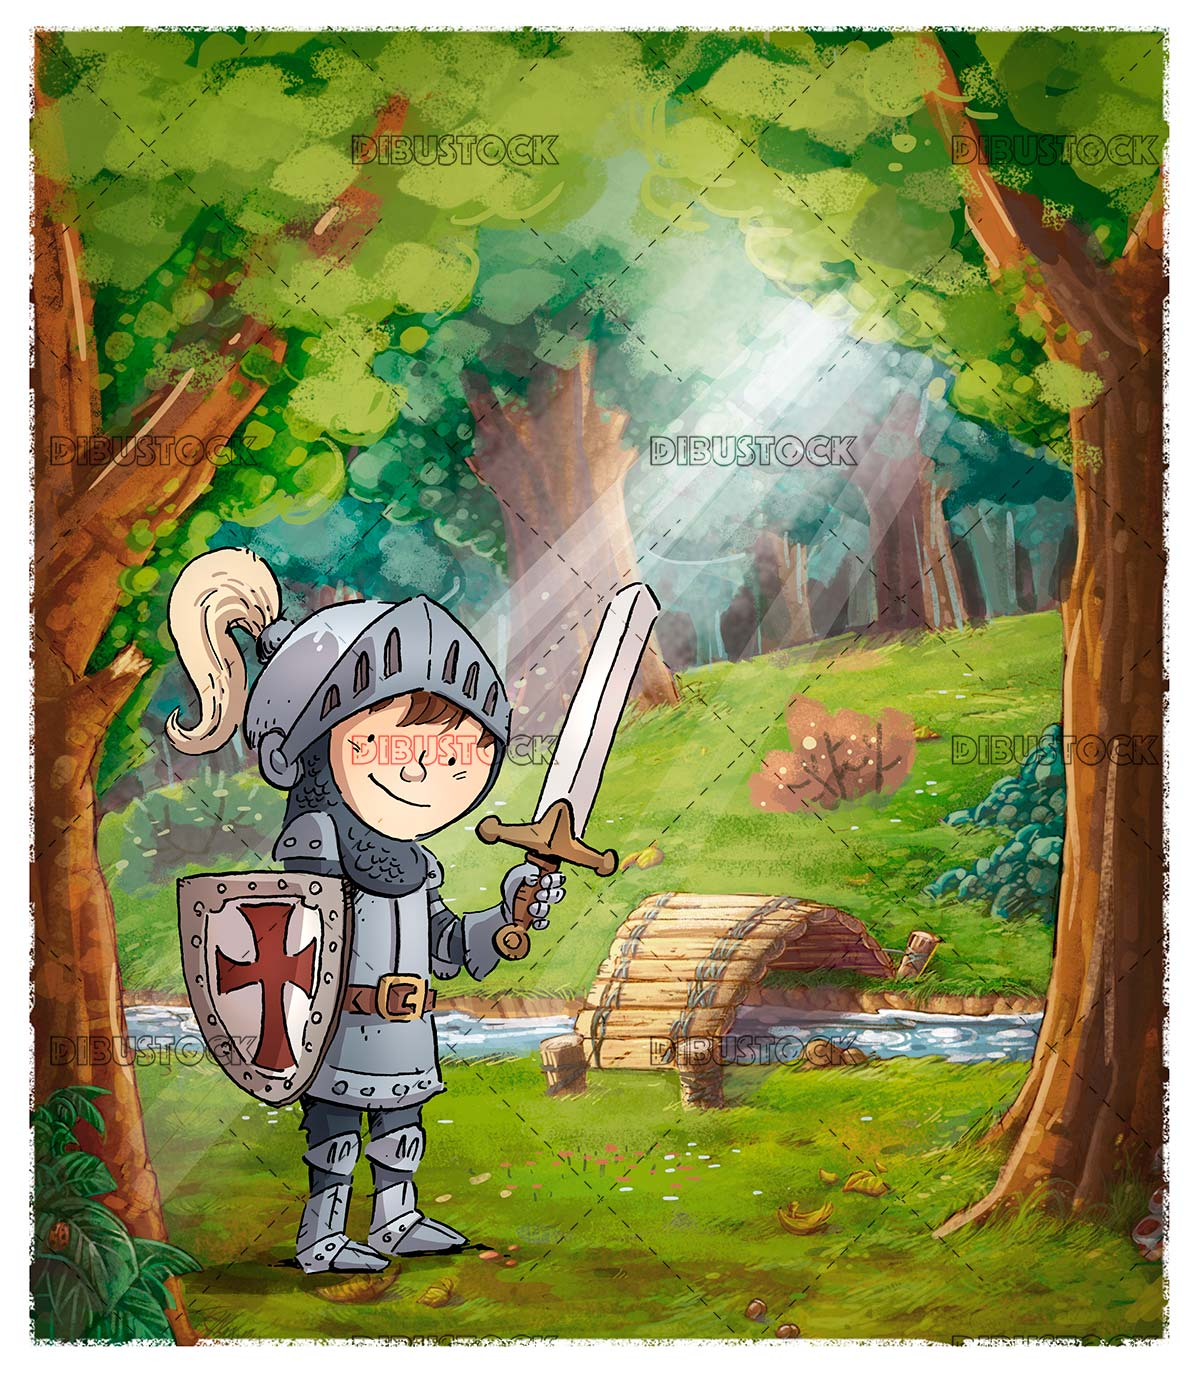 Boy knight with sword and armor in a forest with river